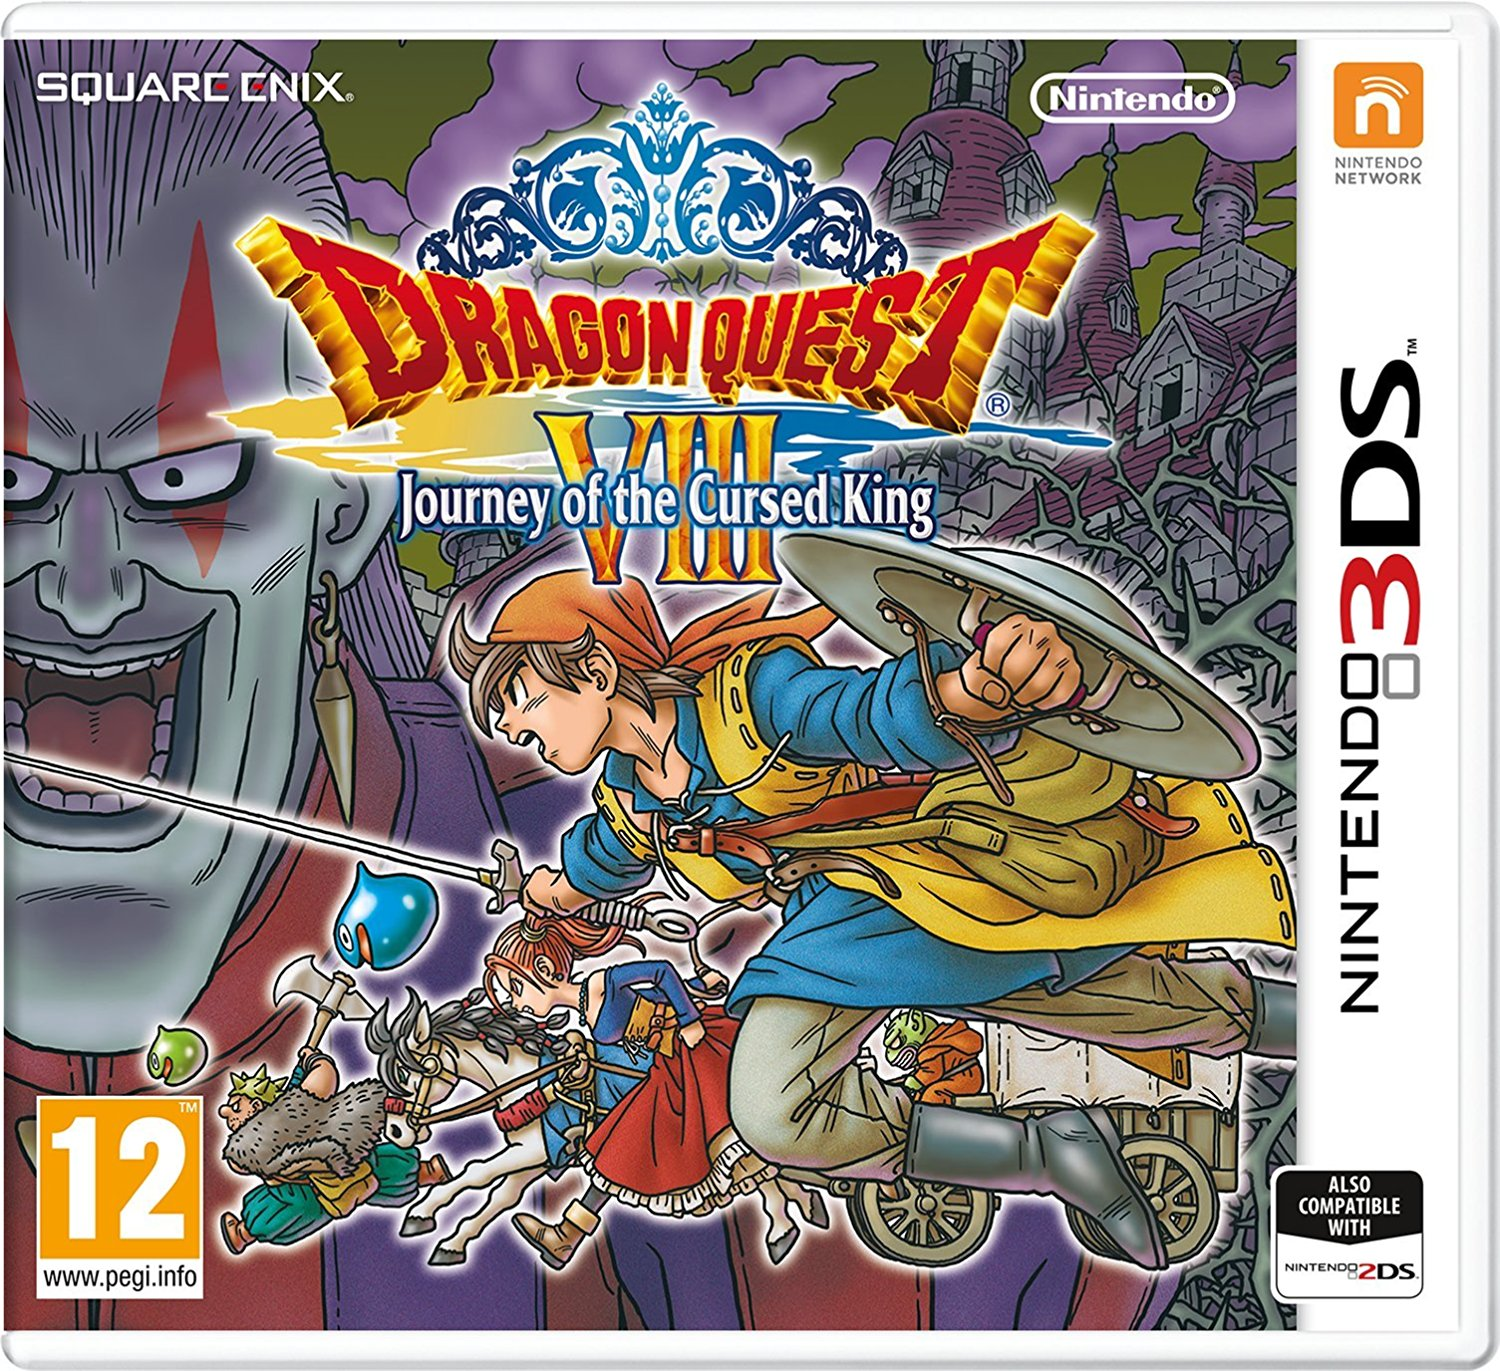 Review | Dragon Quest VIII: Journey of the Cursed King